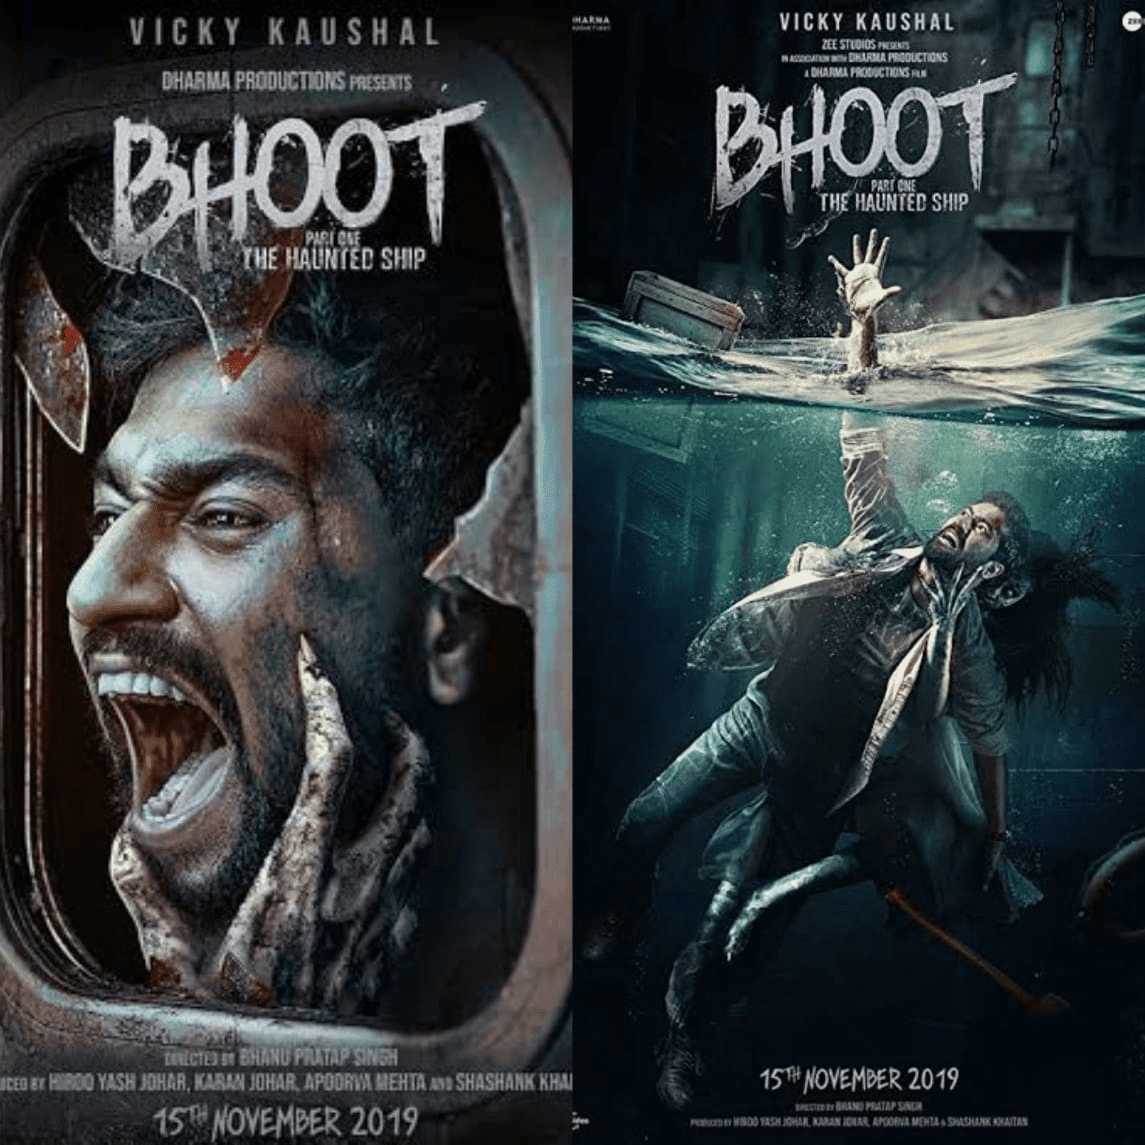 new hindi movie release this weekend,new hindi movies releasing this week,which hindi movies are releasing this friday,bollywood movies releasing last week,hindi movies releasing last week